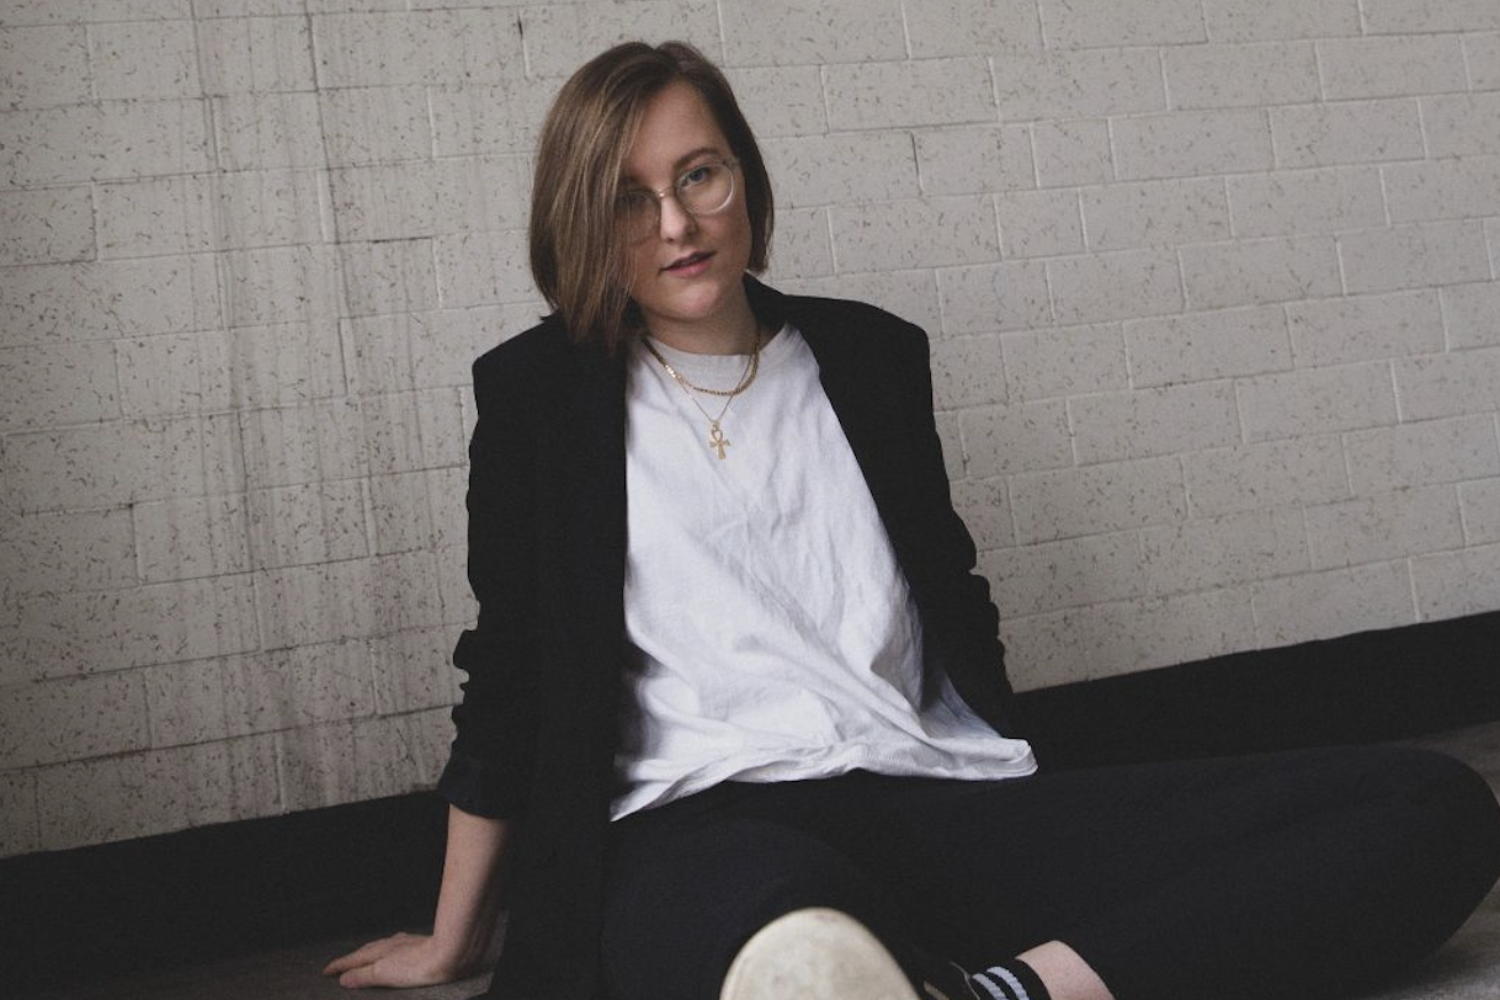 Lindsay Munroe unveils new single 'Need A Ride'